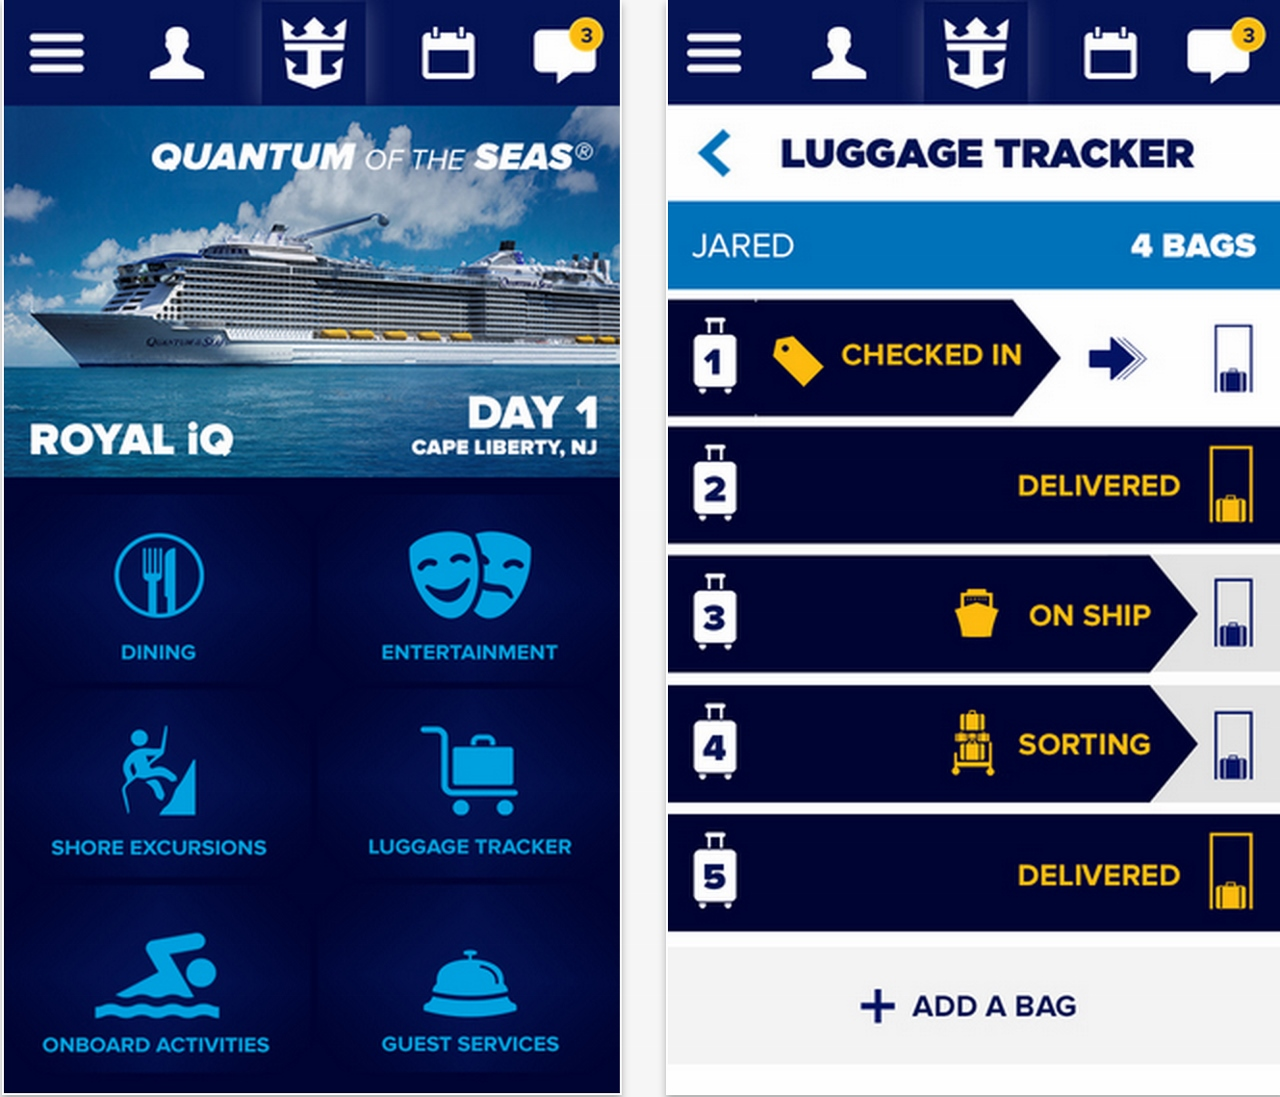 The Royal IQ app is only available on limited Royal Caribbean ships at present.